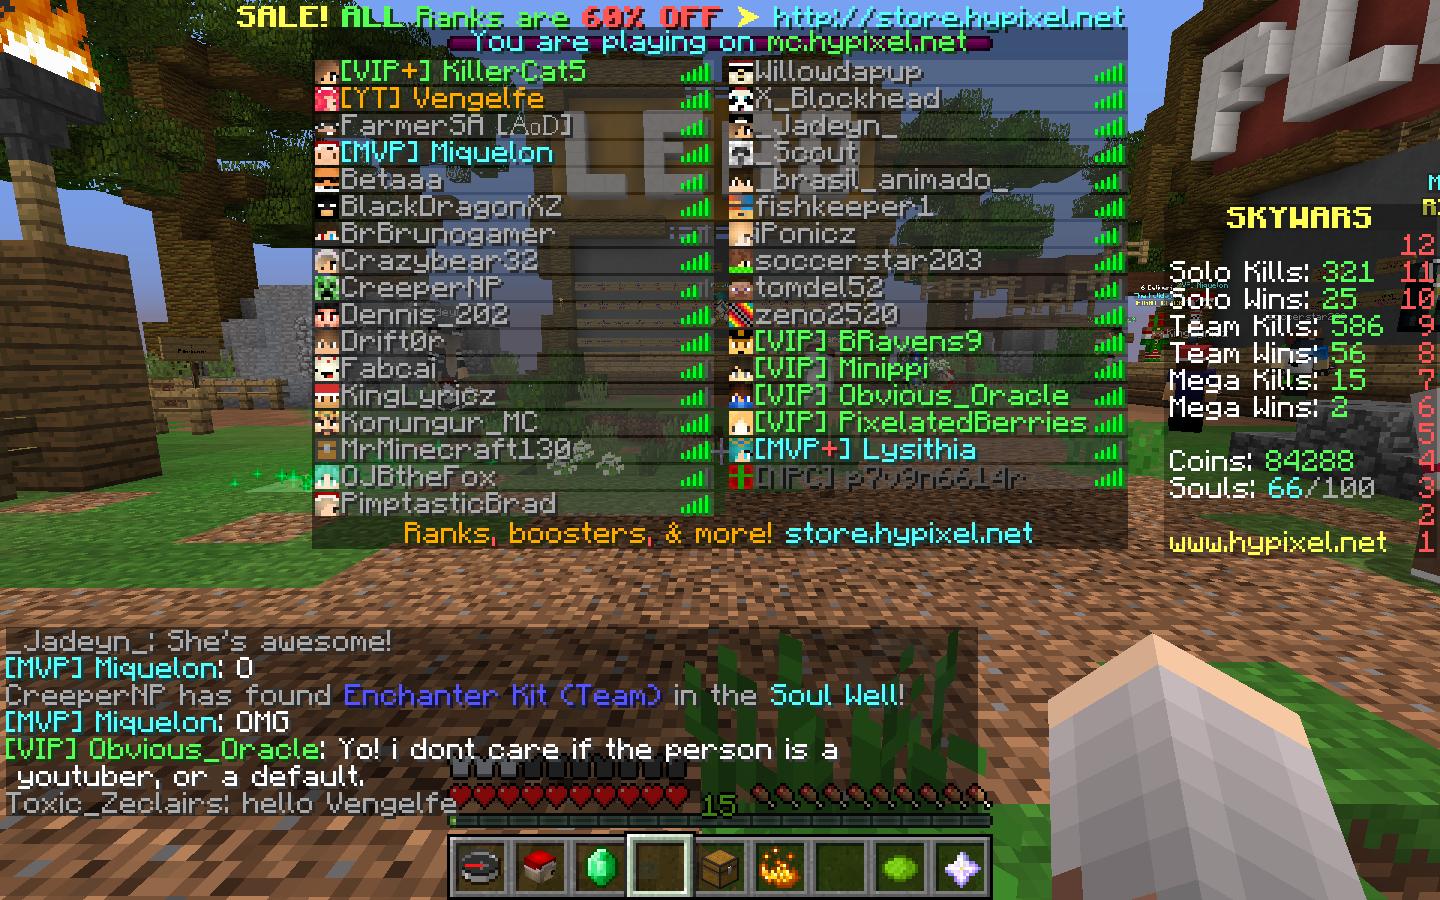 Cookie's Blog ♥ : I FOUND VENGELFE ON HYPIXEL :D